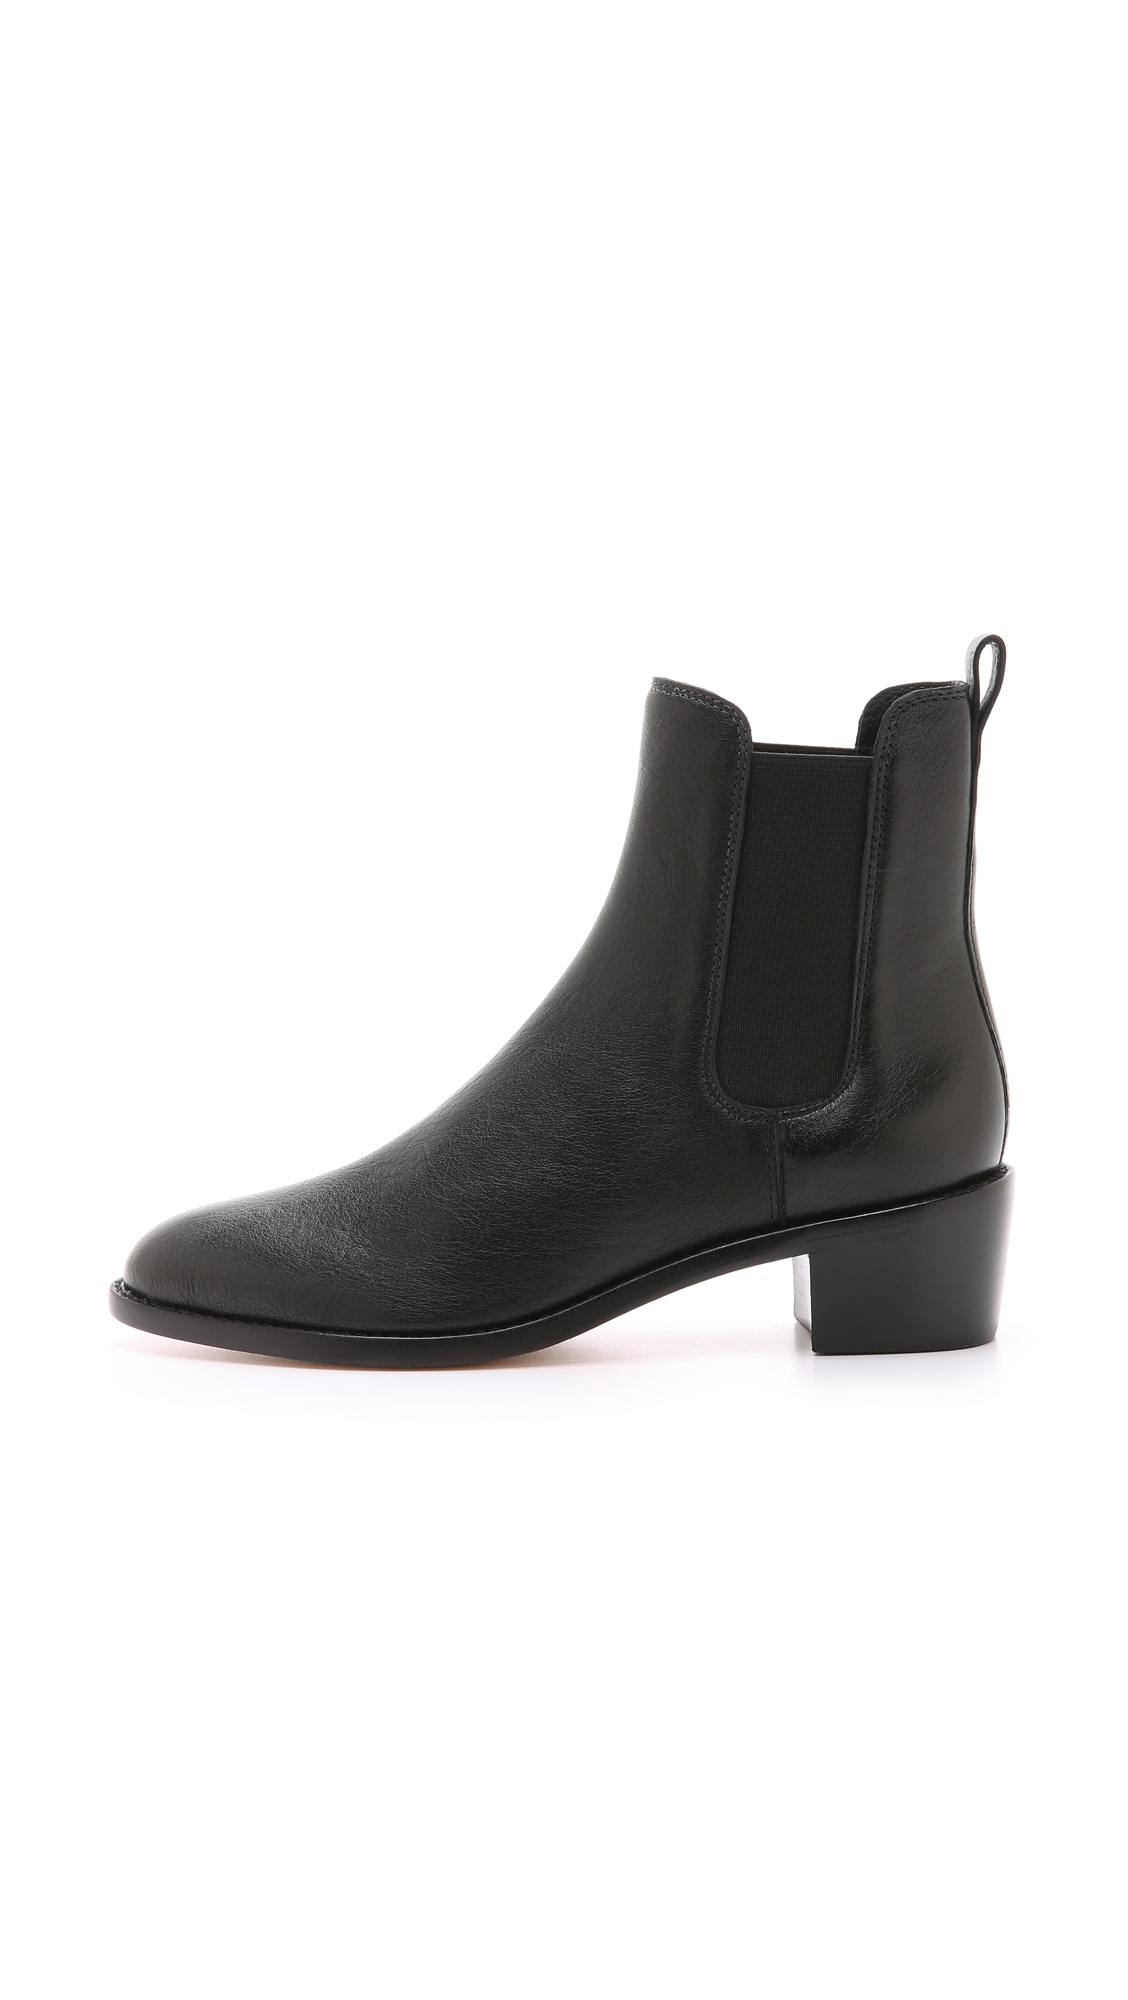 free shipping pictures Loeffler Randall Rubber Round-Toe Ankle Boots purchase high quality online dlxIUYCR